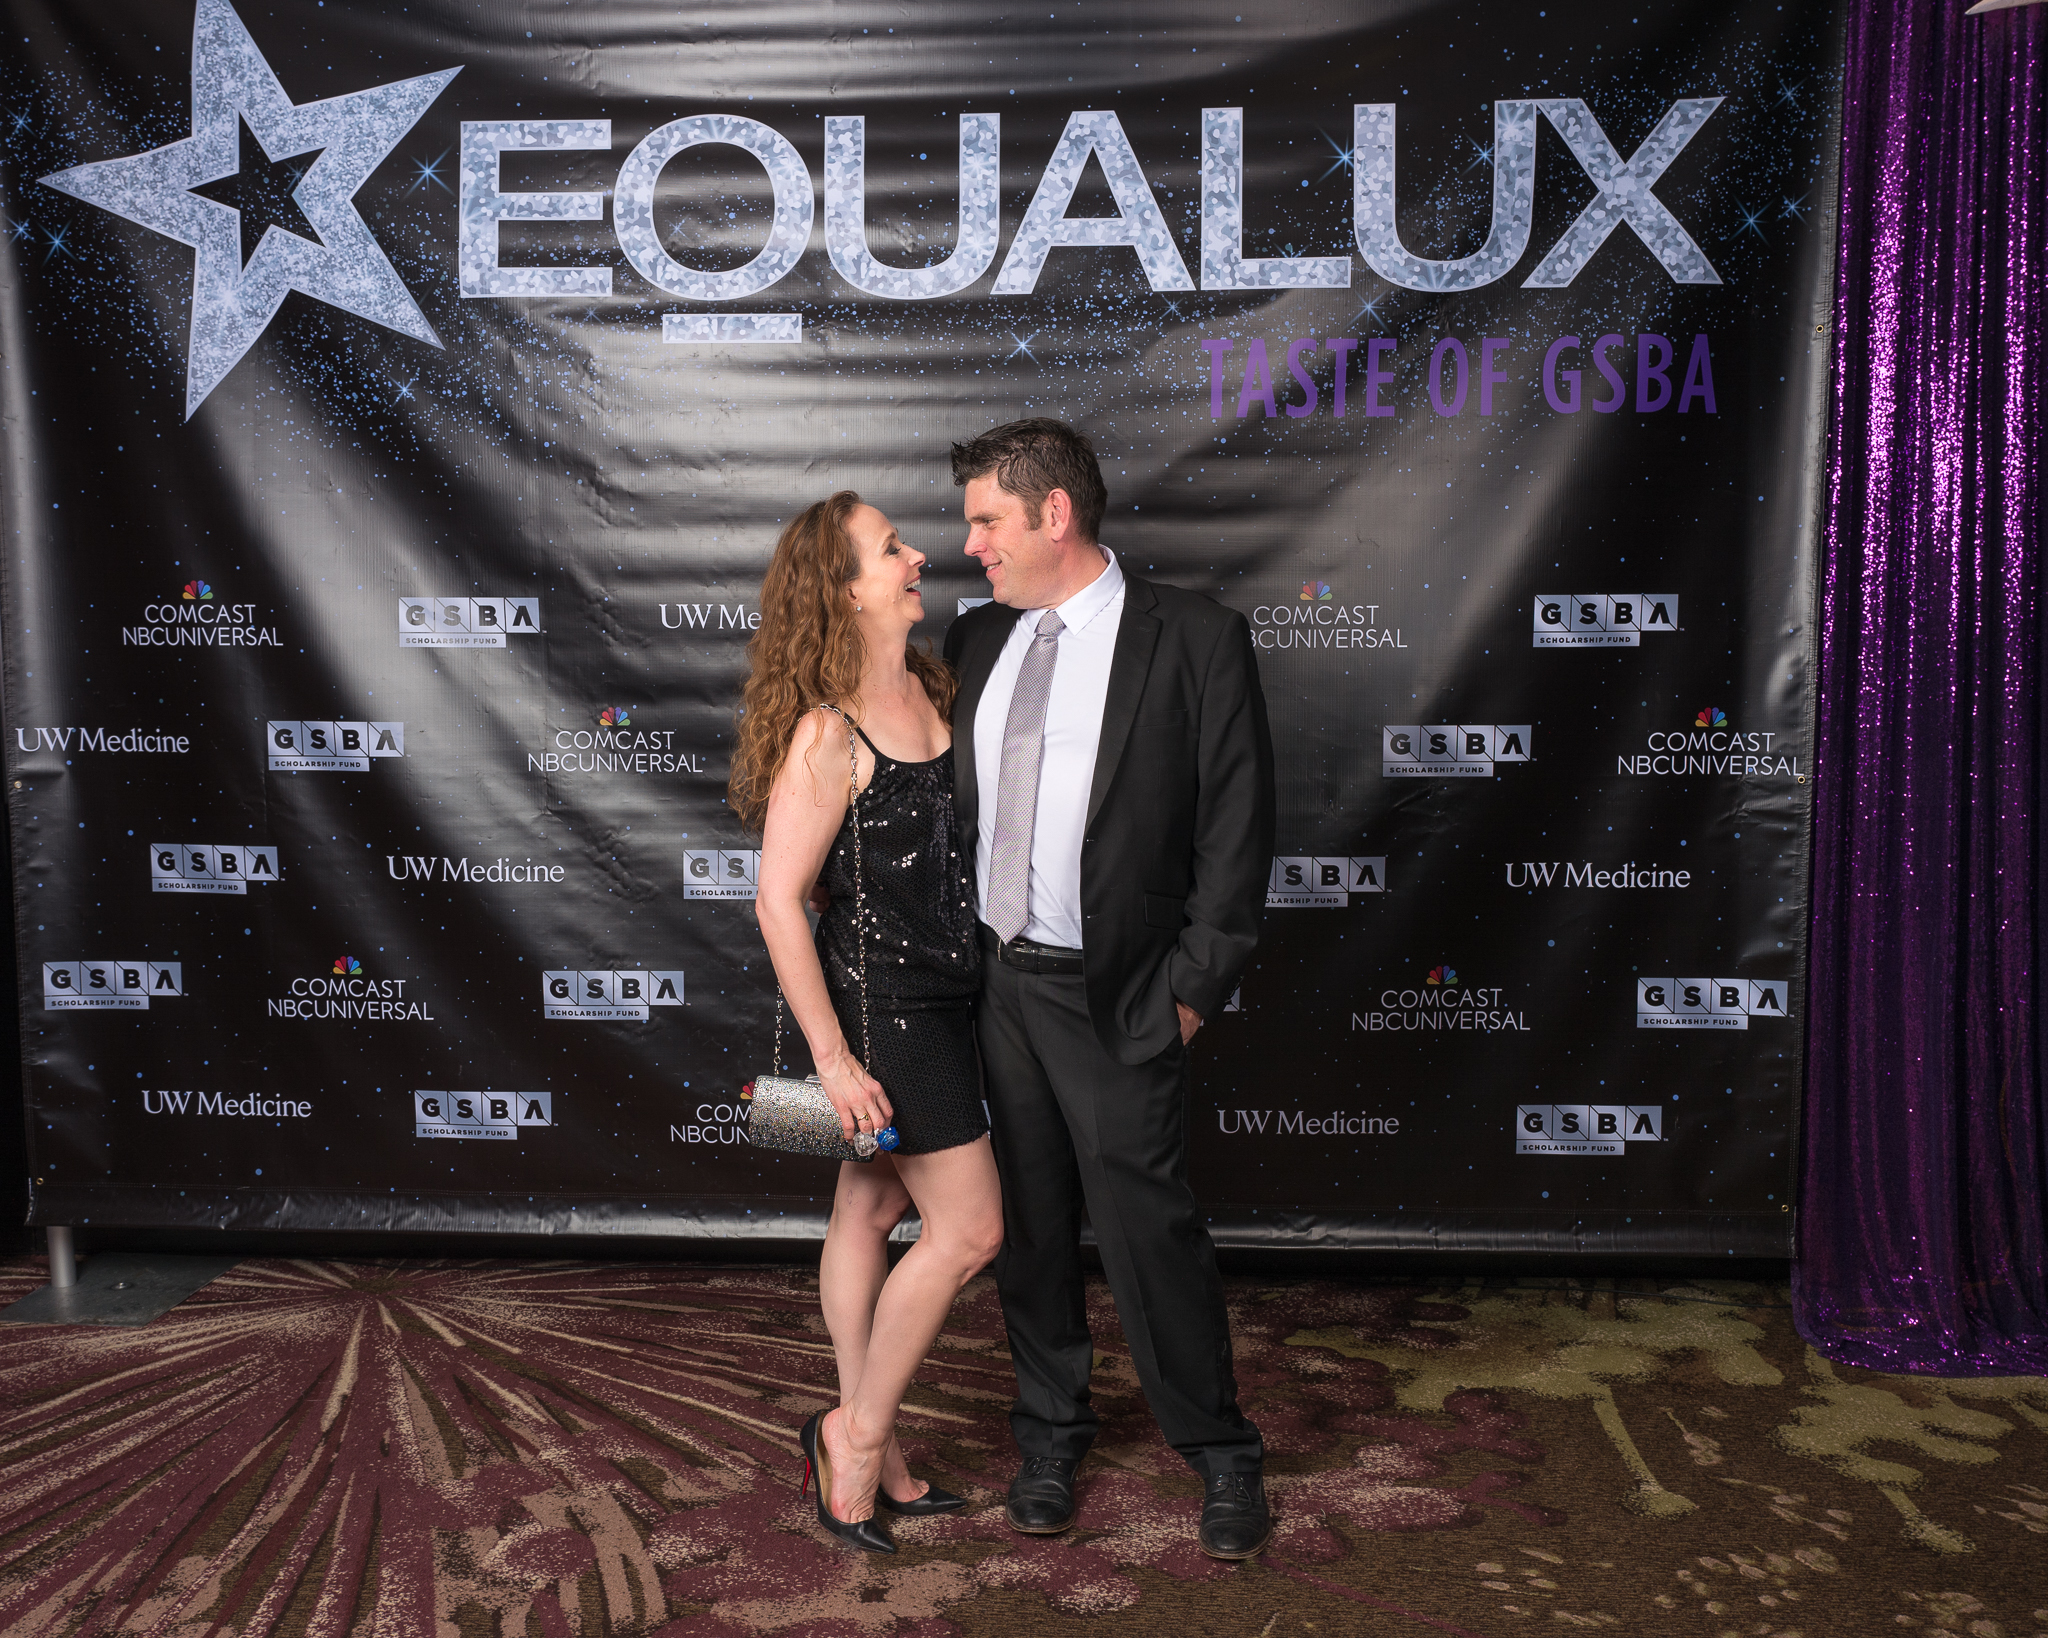 111718_GSBA EQUALUX at The Westin Seattle (Credit- Nate Gowdy)-159.jpg